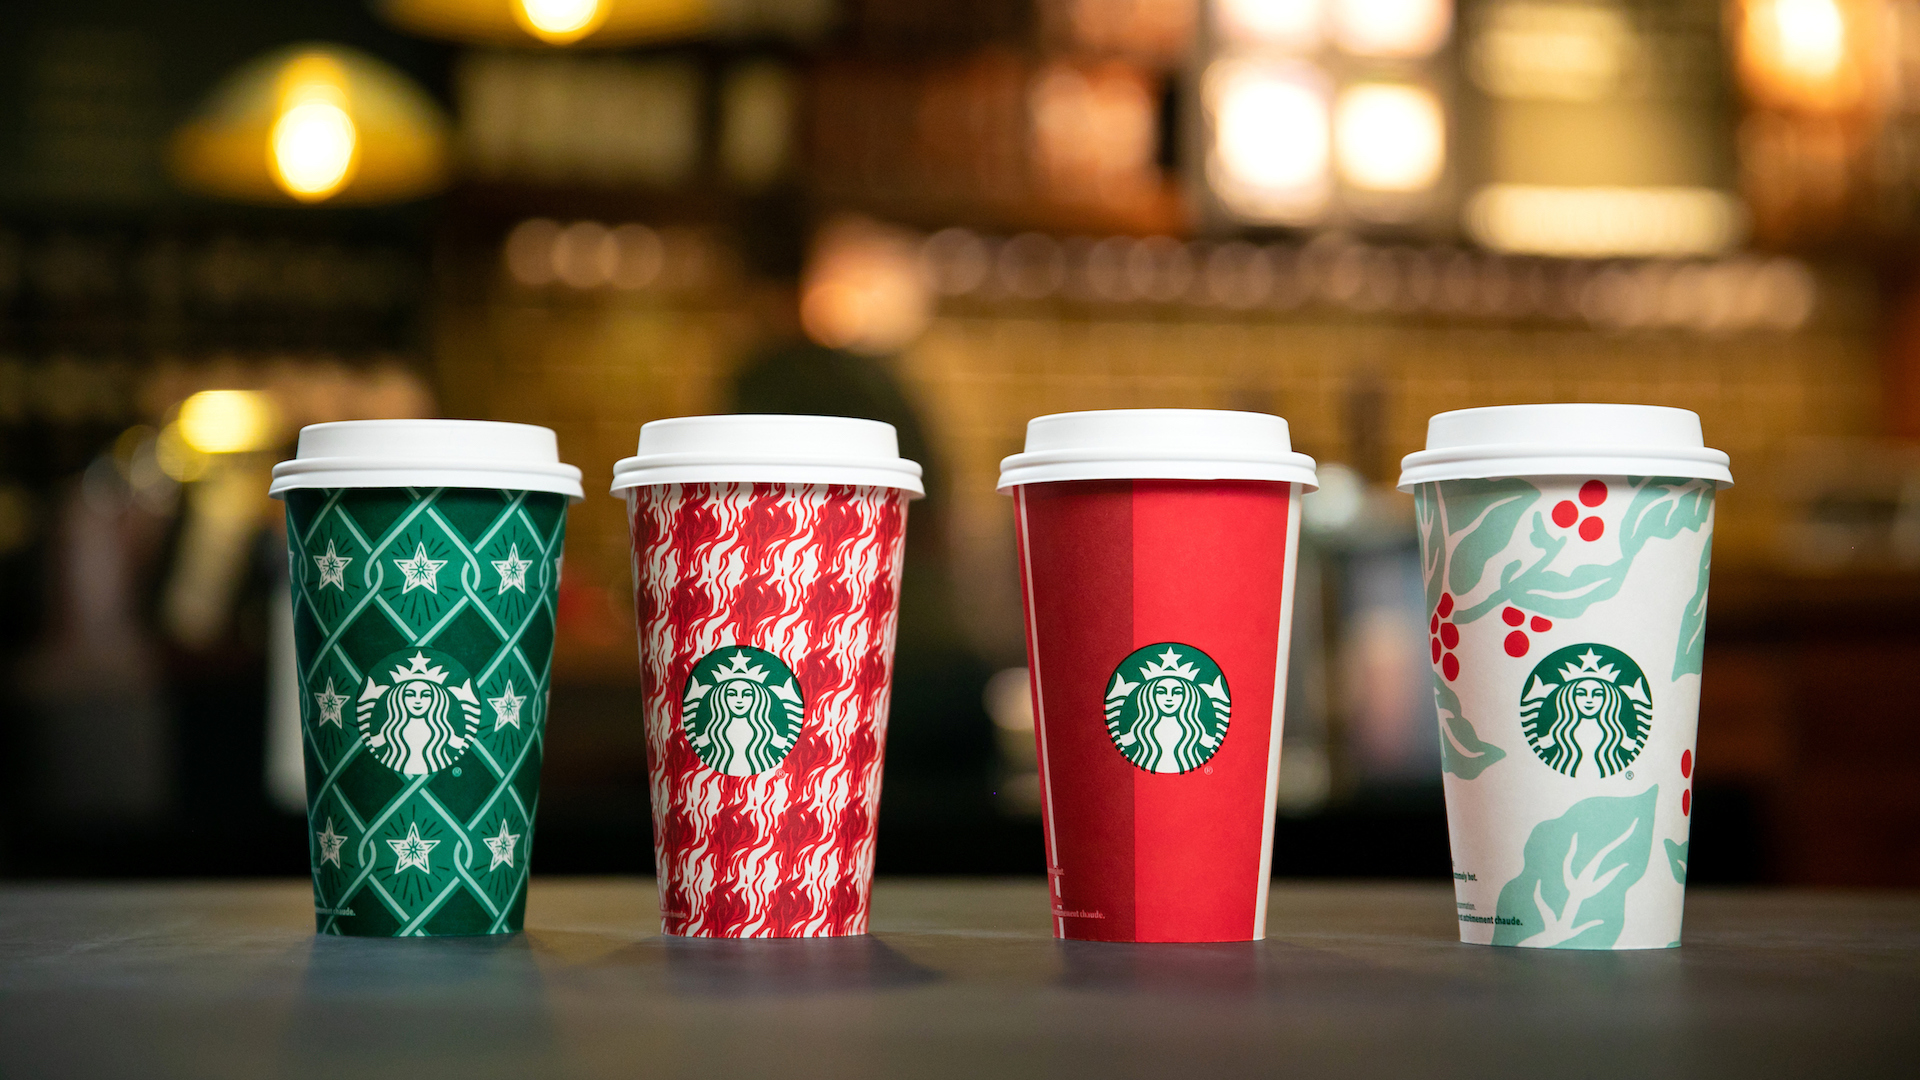 You Can Snag a Sweet Deal at Starbucks Today